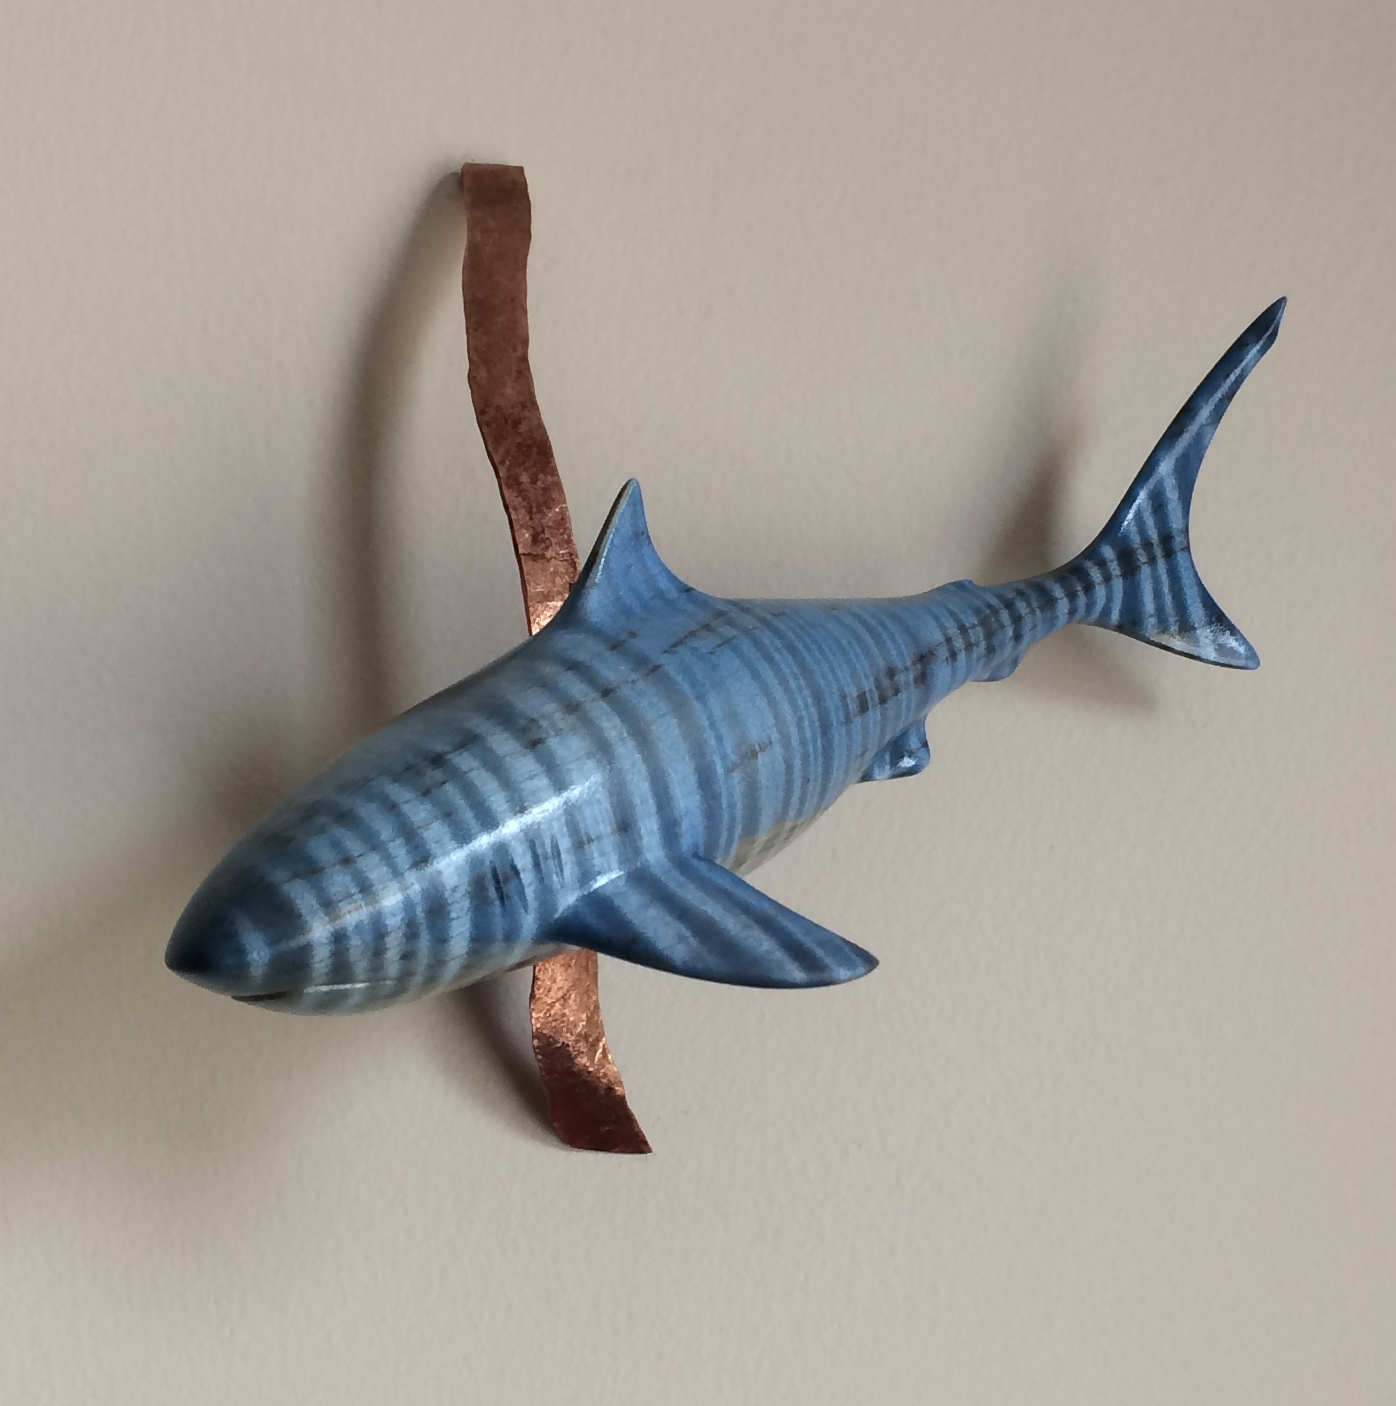 Tiger Shark (sold)